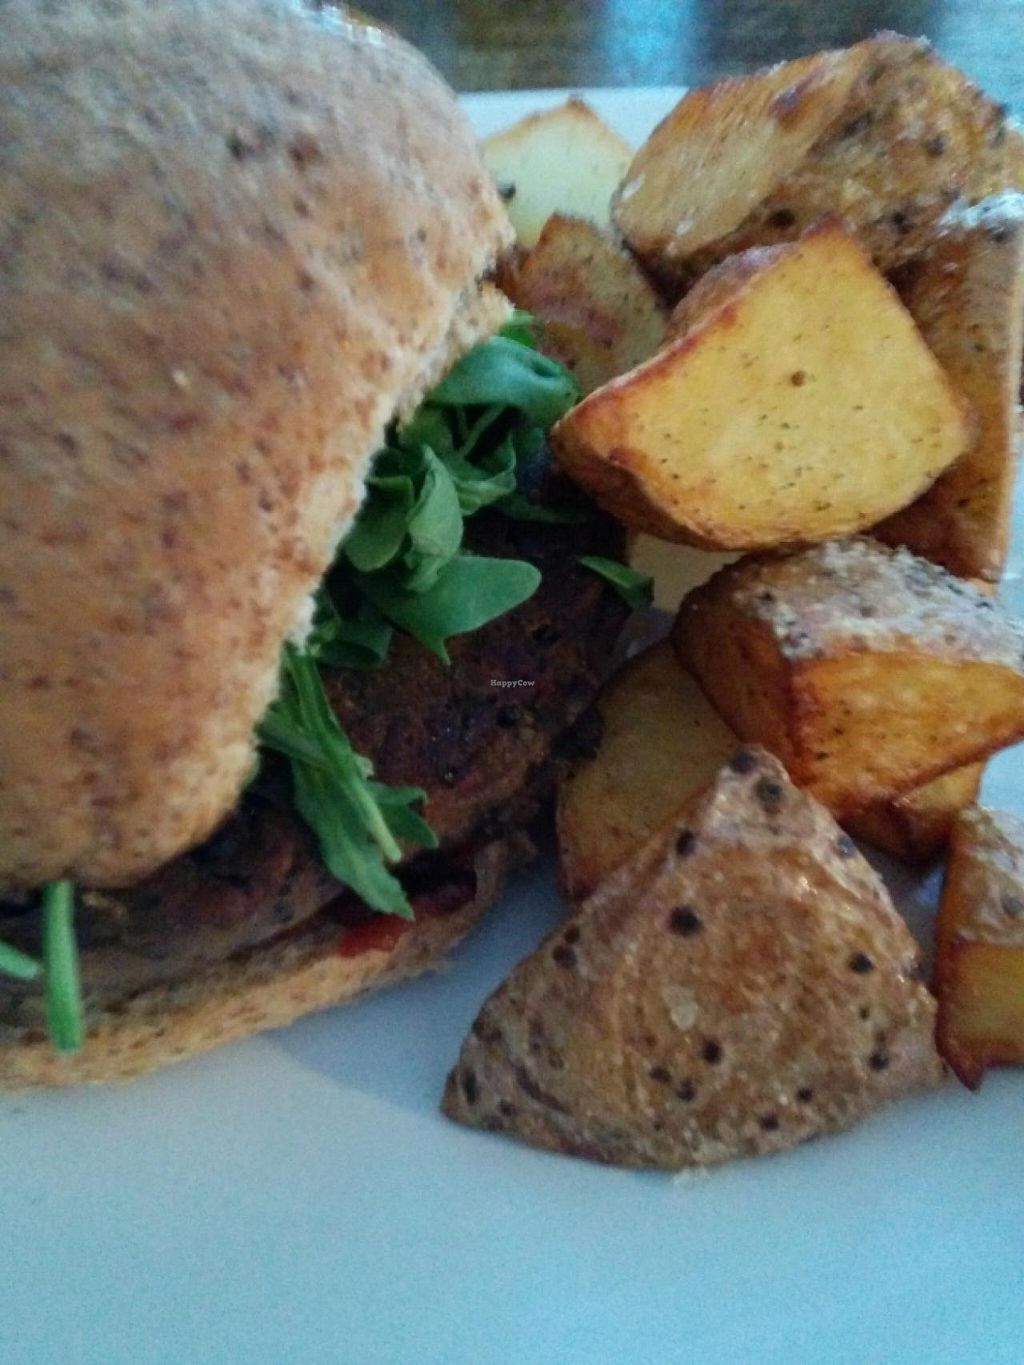 """Photo of CLOSED: Veg Bar  by <a href=""""/members/profile/CLRtraveller"""">CLRtraveller</a> <br/>black-bean burger <br/> June 17, 2015  - <a href='/contact/abuse/image/56985/106227'>Report</a>"""